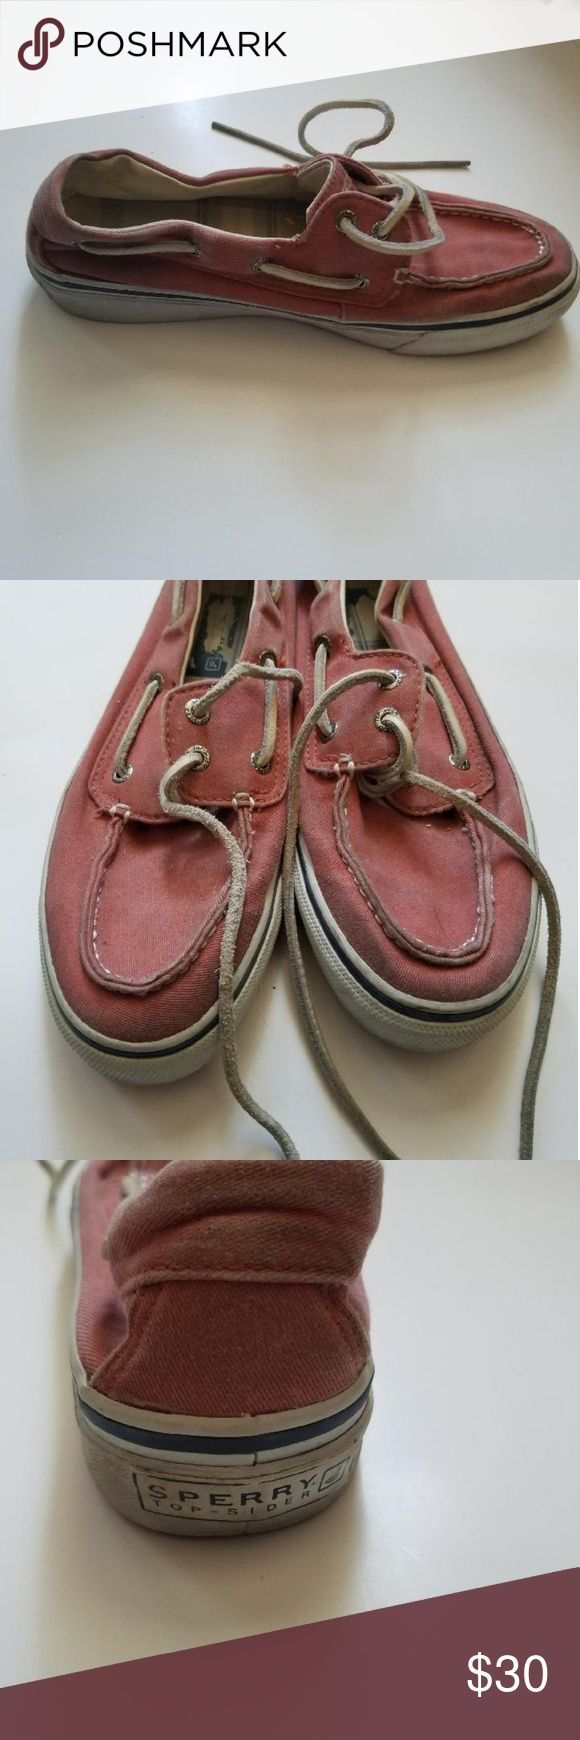 Sperry Top-Side Men's Canvas Salmon Shoes Size 8 Pre-owned in good condition Sperry Men's Canvas Red/Pink Boot Shoes size 8. Sperry Top-Sider Shoes Boat Shoes